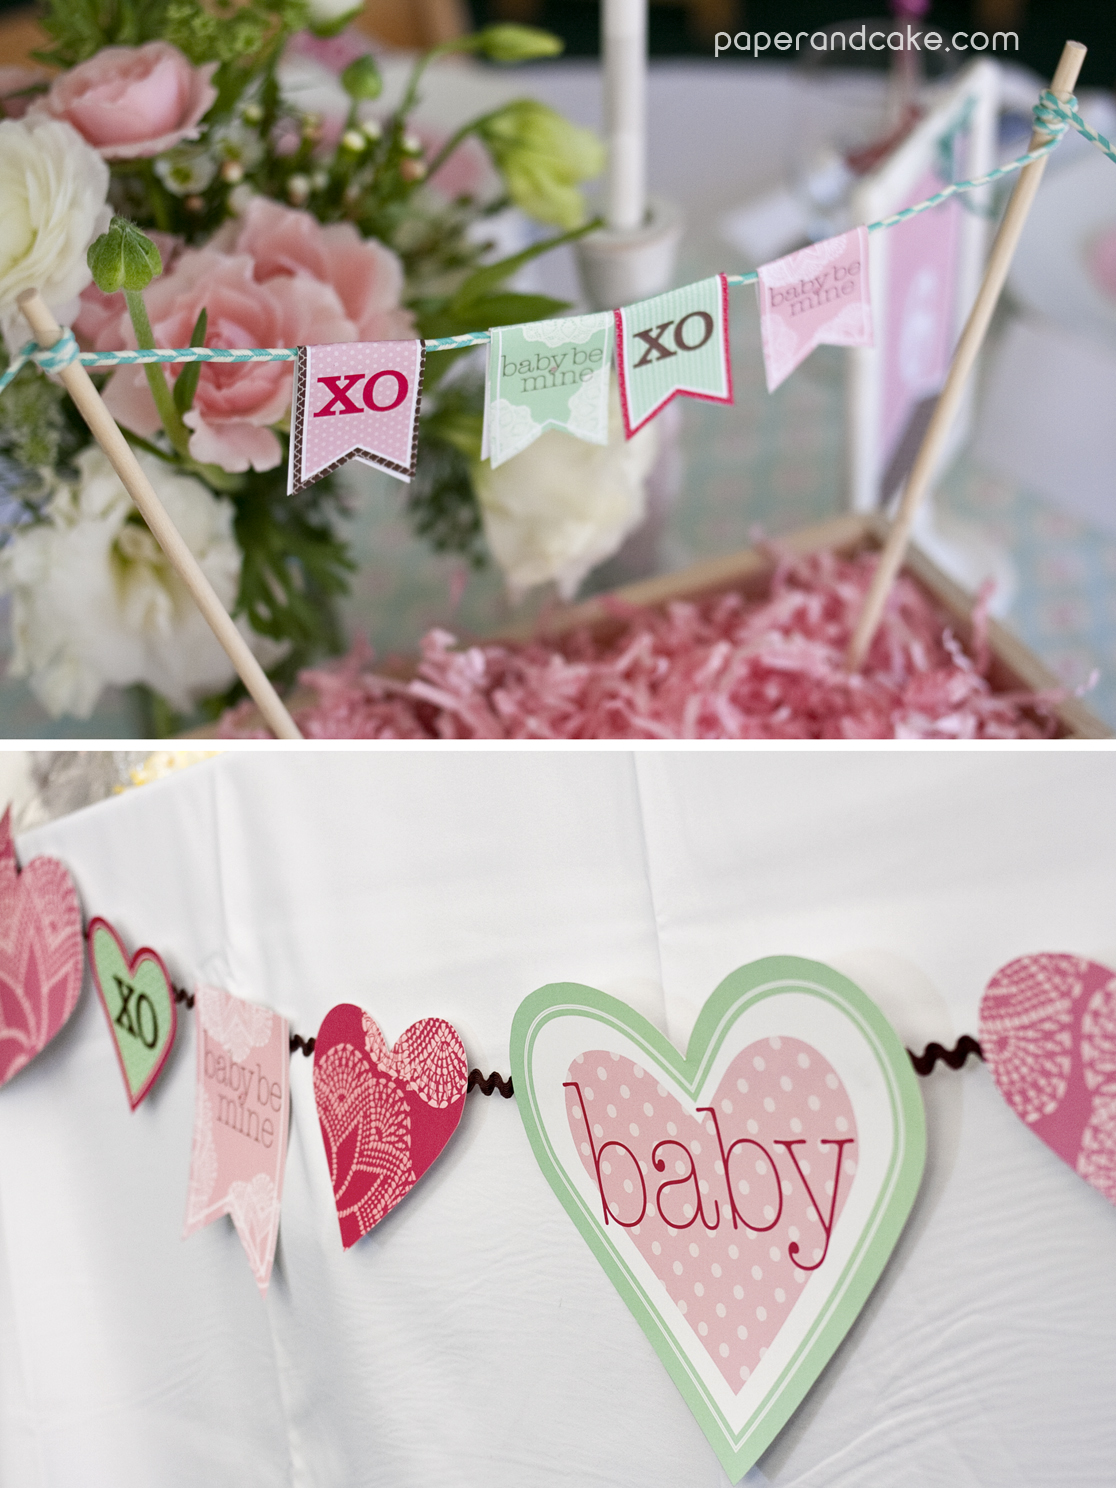 Hugs And Kisses Printable Party Paper And Cake Paper And